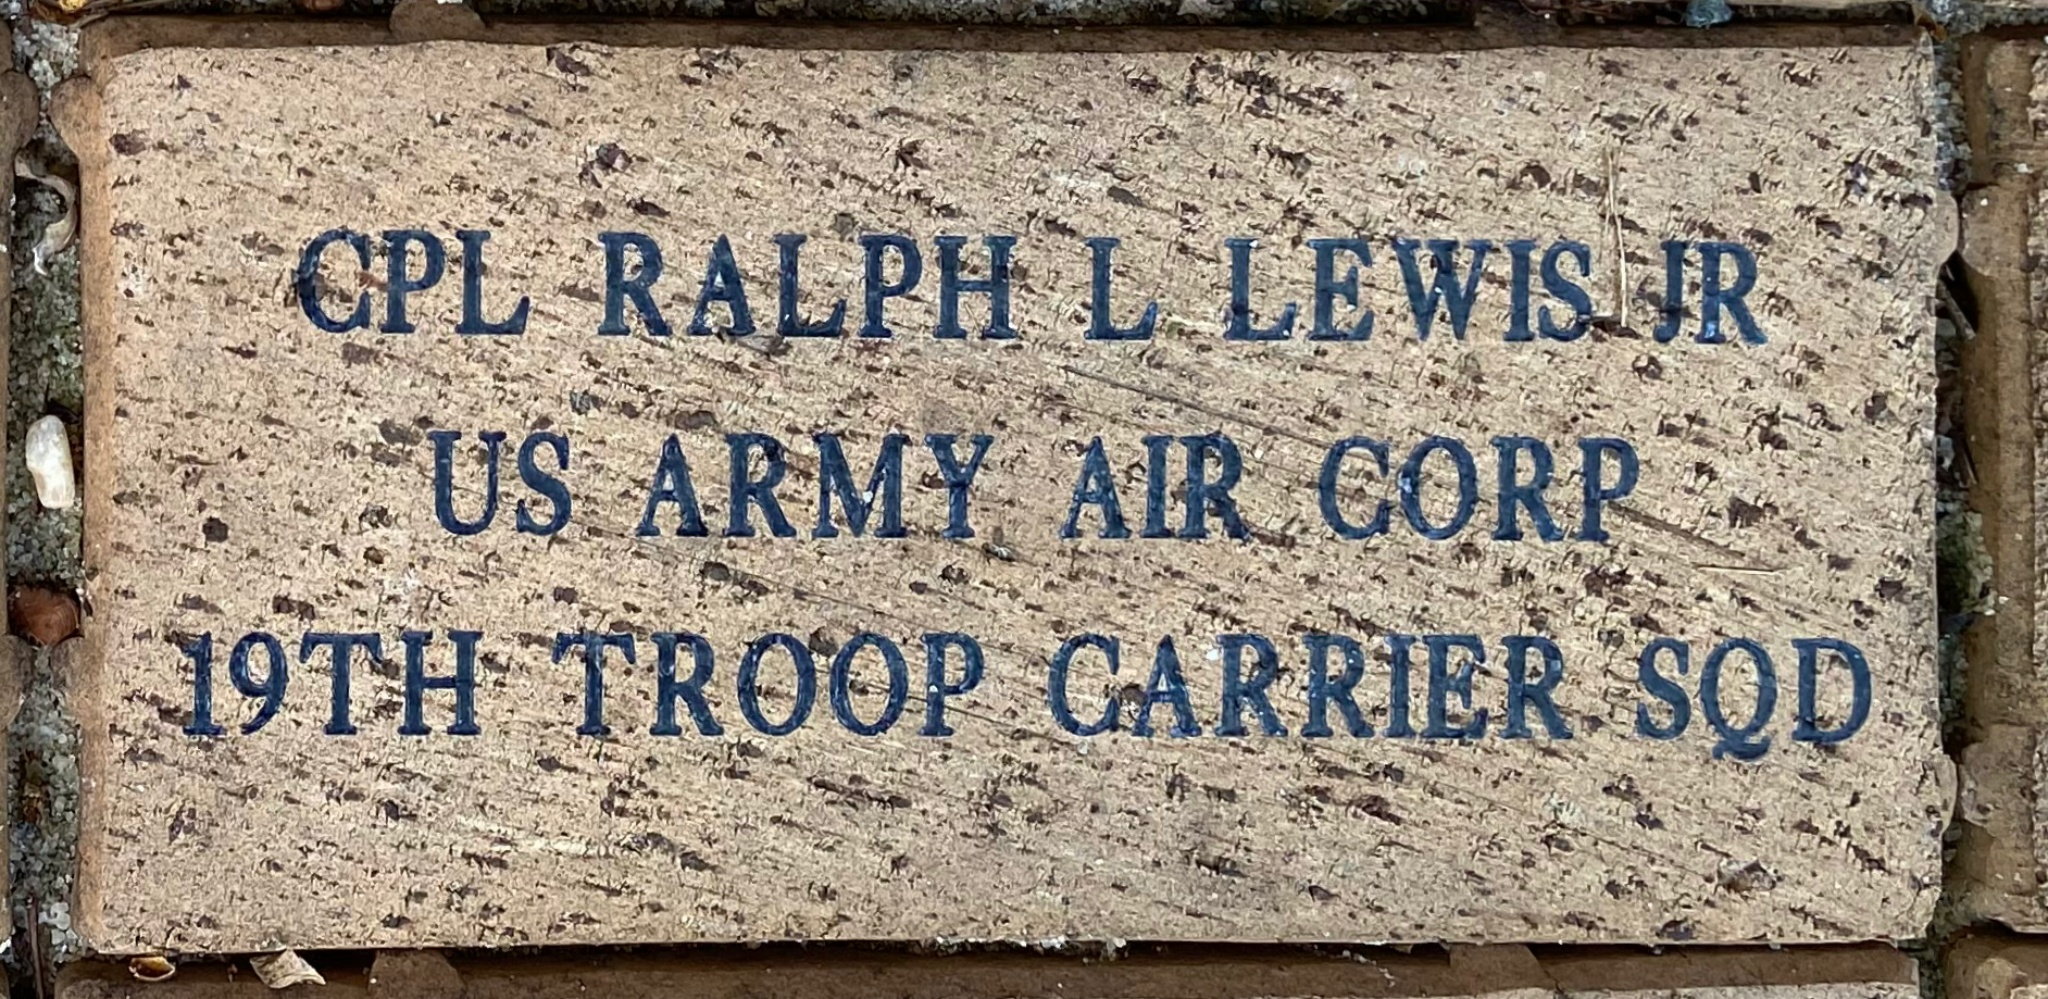 CPL RALPH L LEWIS JR US ARMY AIR CORP 19TH TROOP CARRIER SQD